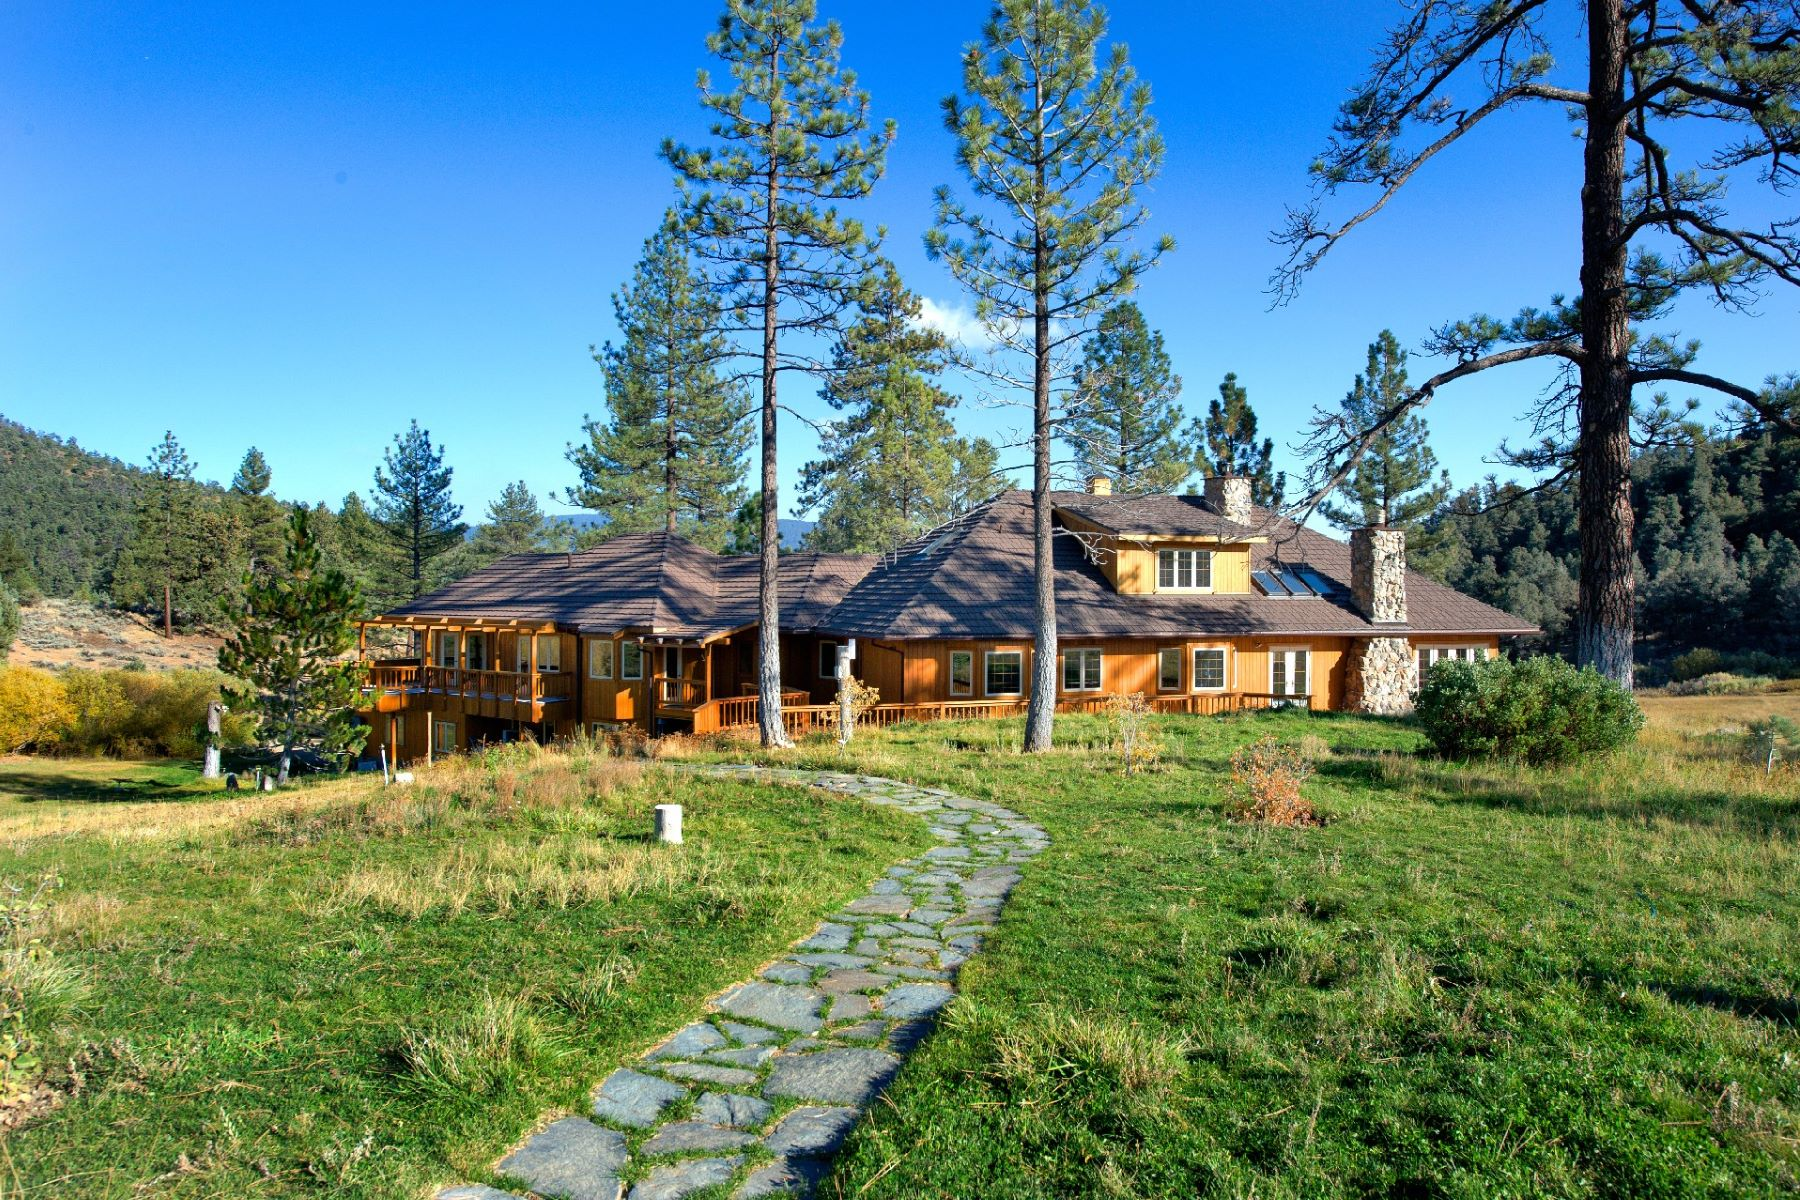 Ферма / ранчо / плантация для того Продажа на Spring Valley Ranch - Rare Mountain Valley Equestrian Property 33224 Seymour Canyon Road Lockwood, Калифорния 93225 Соединенные Штаты